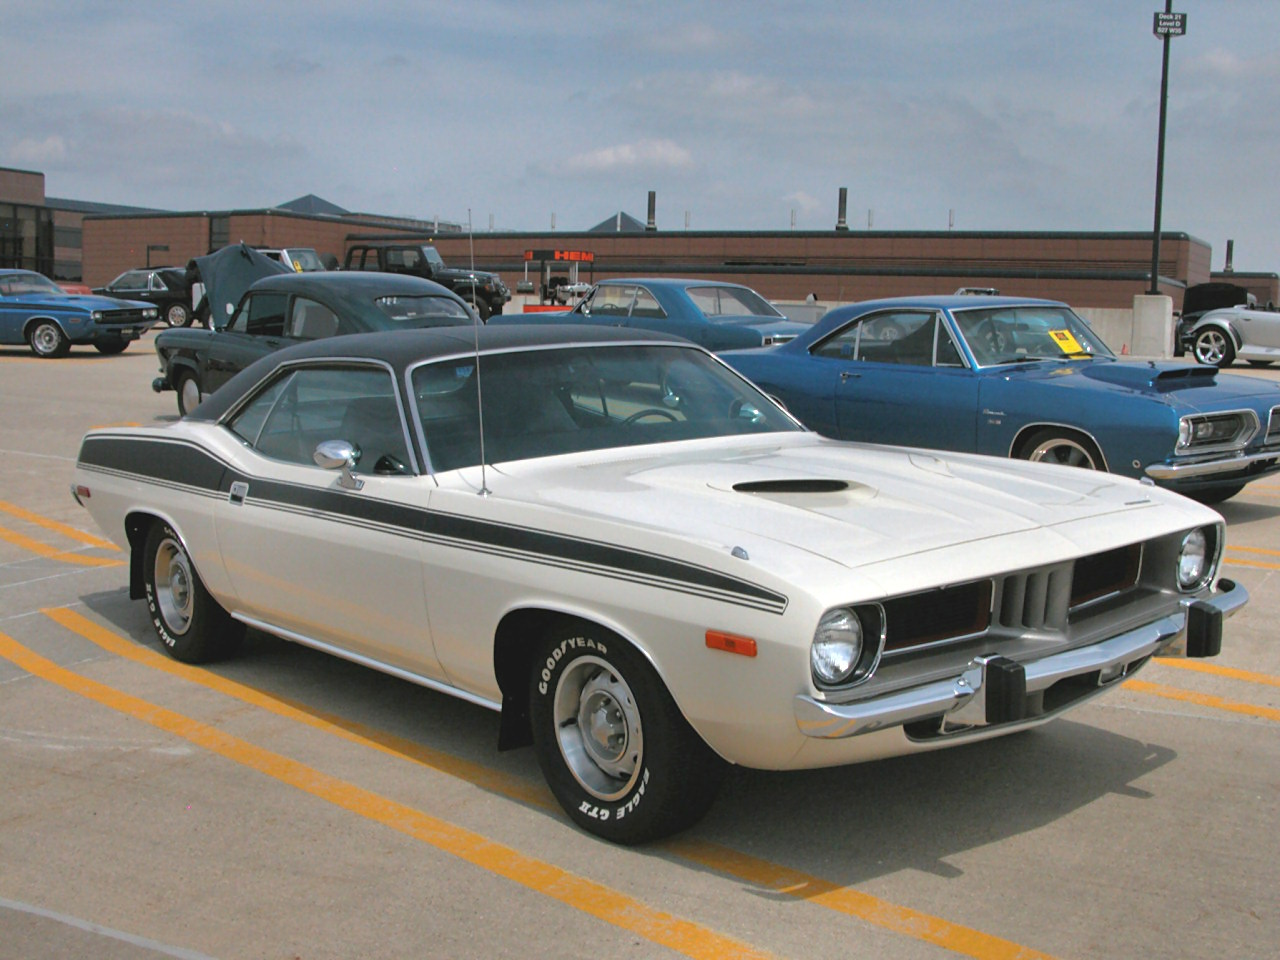 1974 Plymouth Barracuda Classic Car Pictures